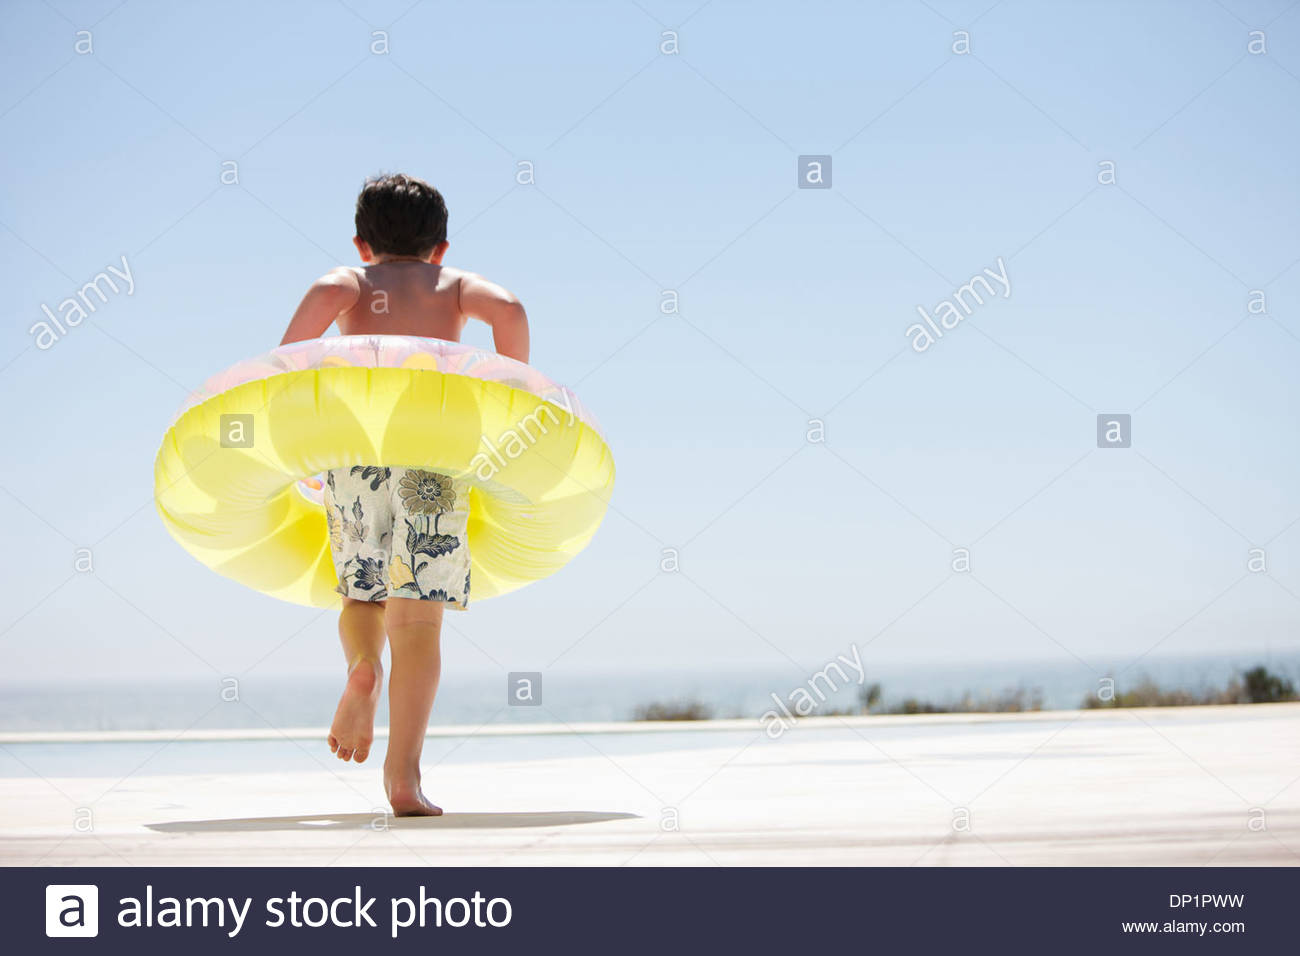 Boy with inflatable ring stepping out of infinity pool - Stock Image